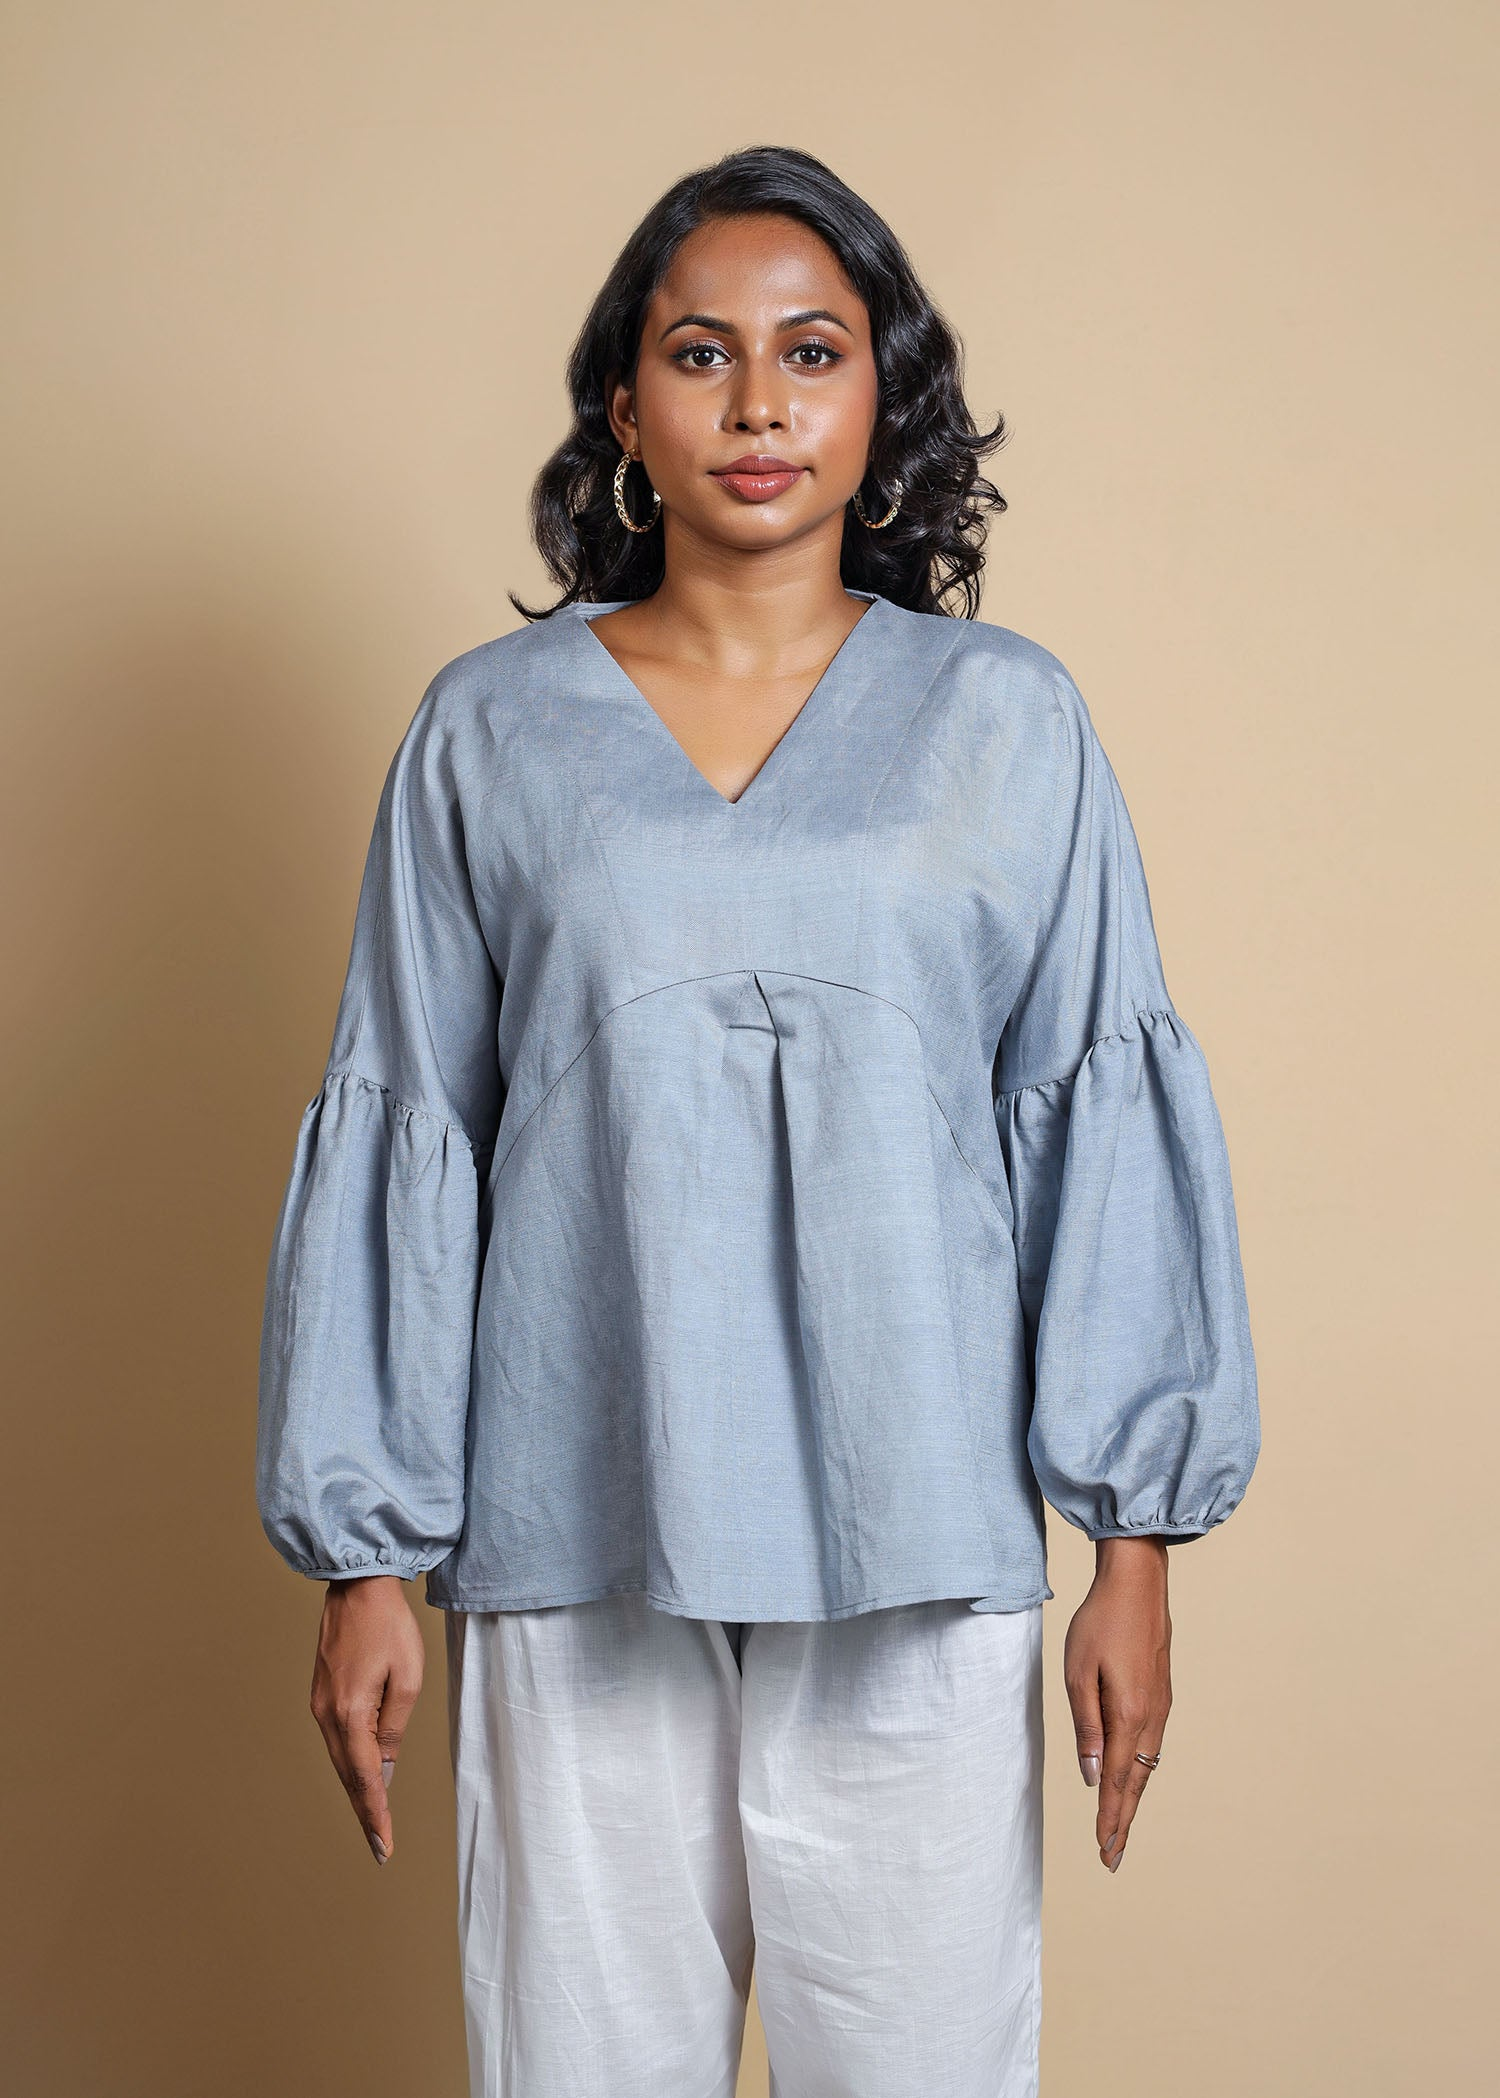 Drop Shoulder Puff Sleeve Top With Front Box Pleats